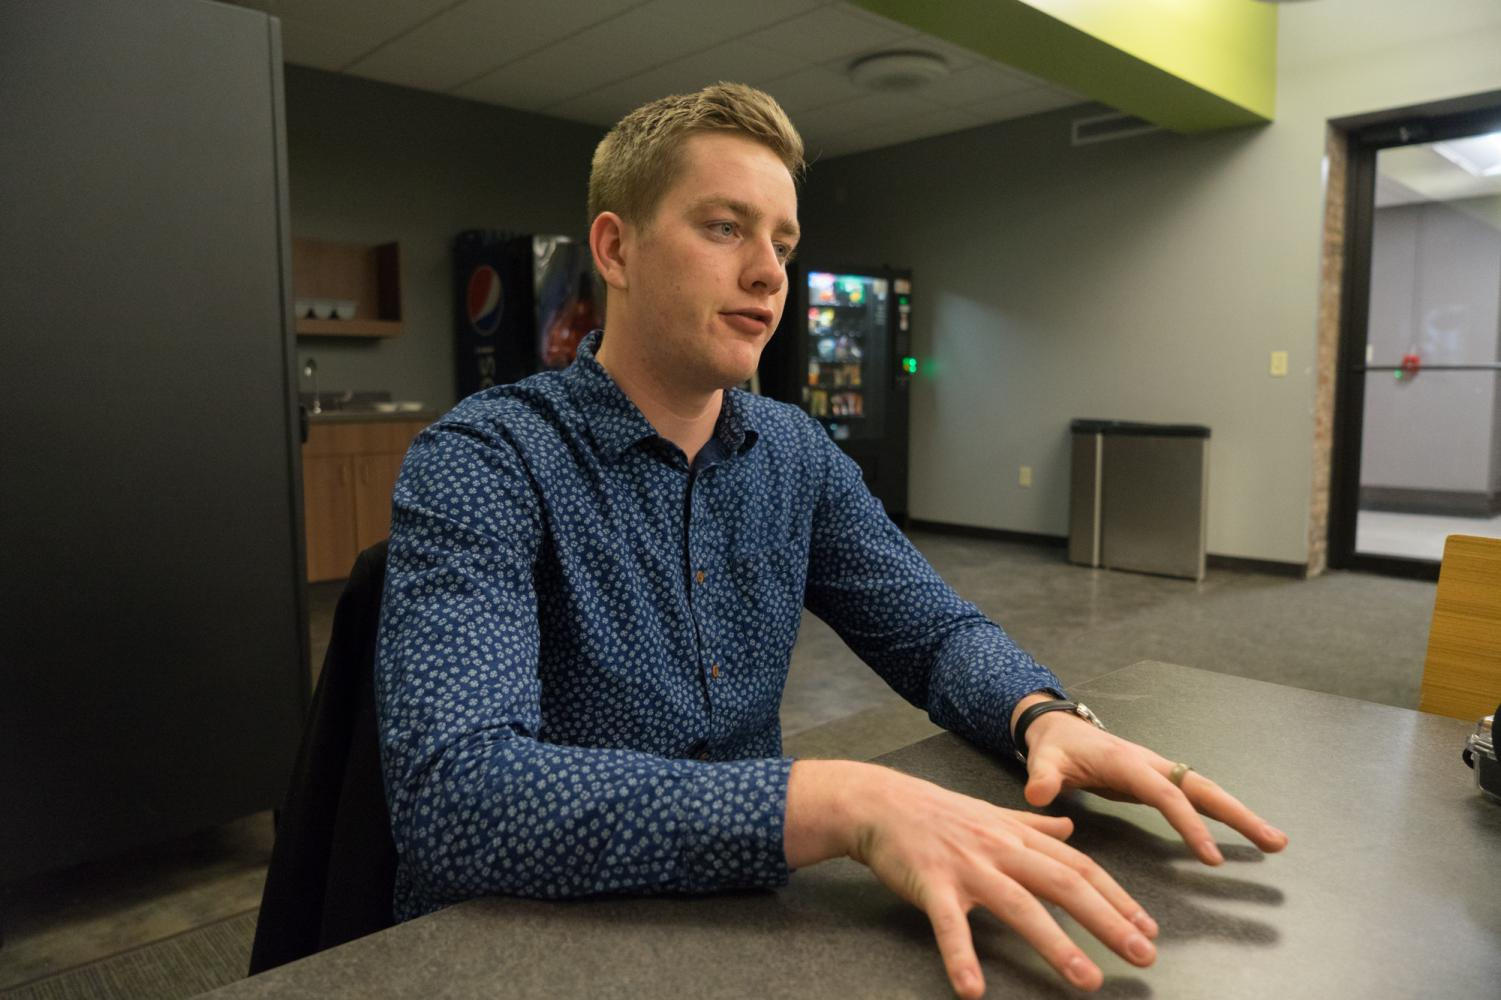 Jack Toner, a junior in the College of Business Administration and member of the program's founding committee, said the program aims to intertwine students with the community.